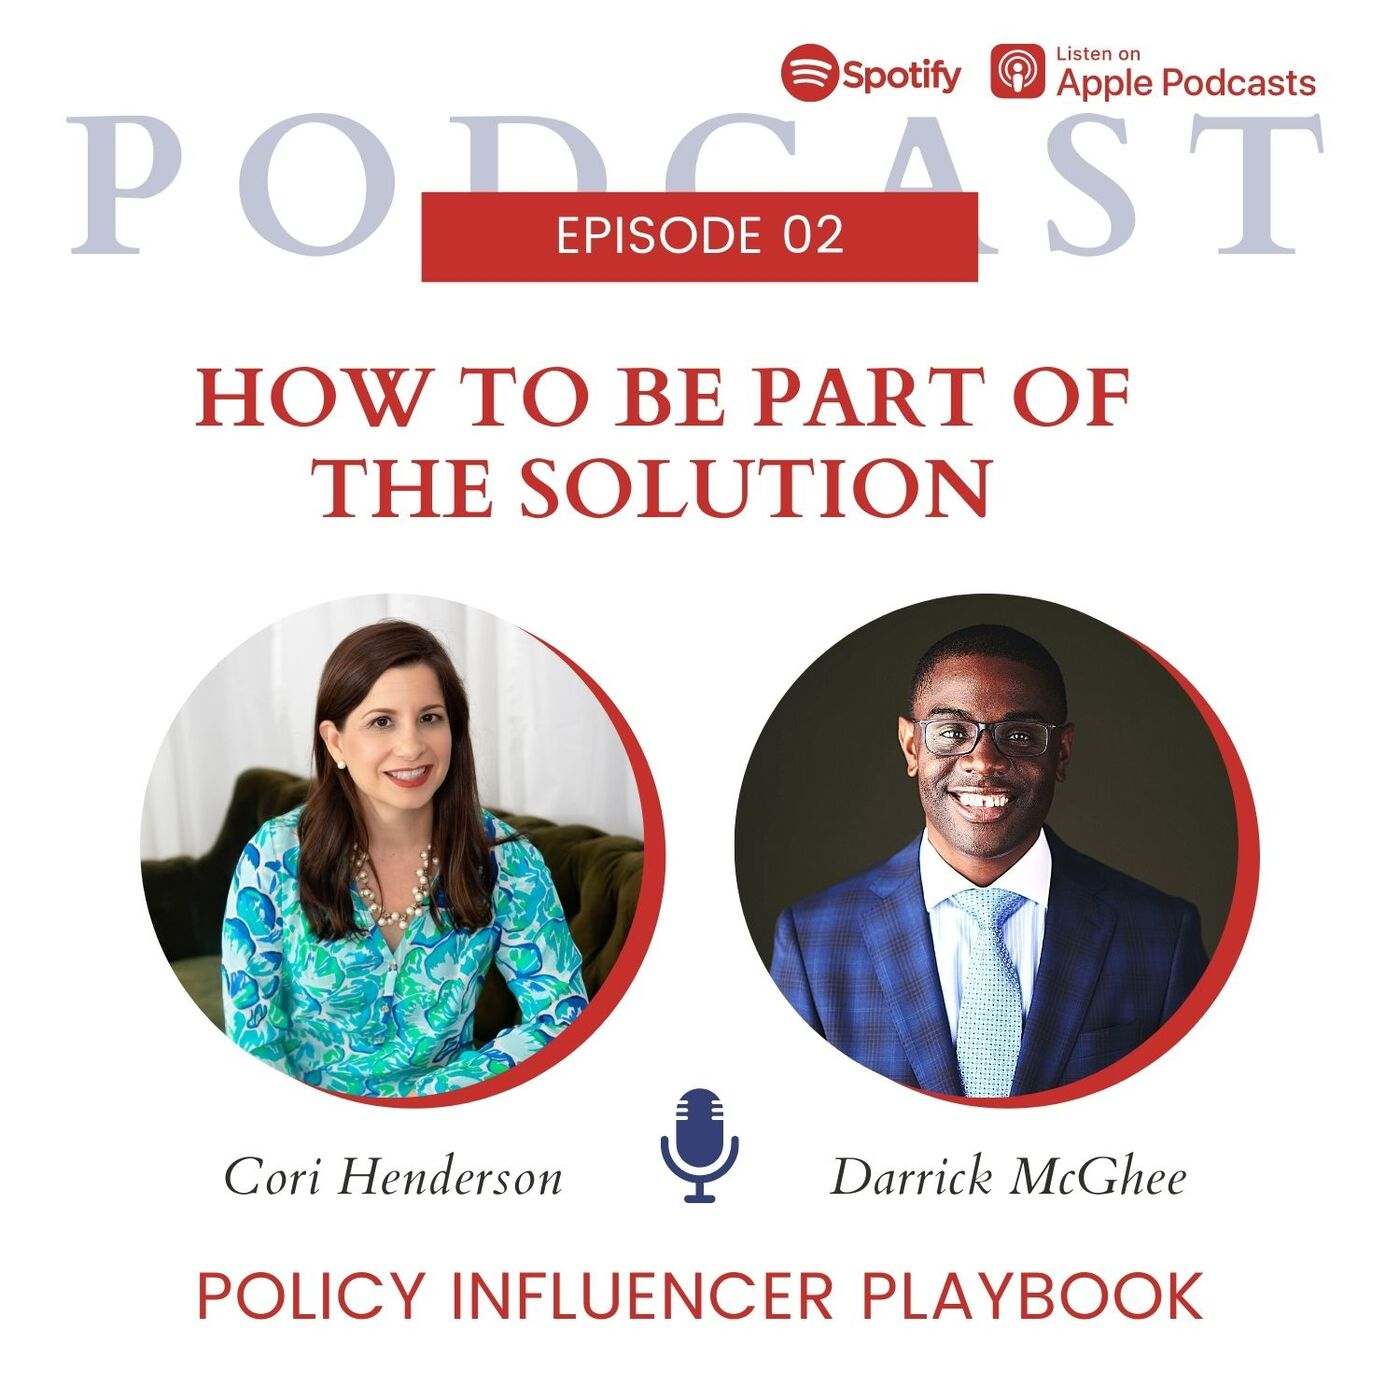 How to Be Part of the Solution with Darrick McGhee